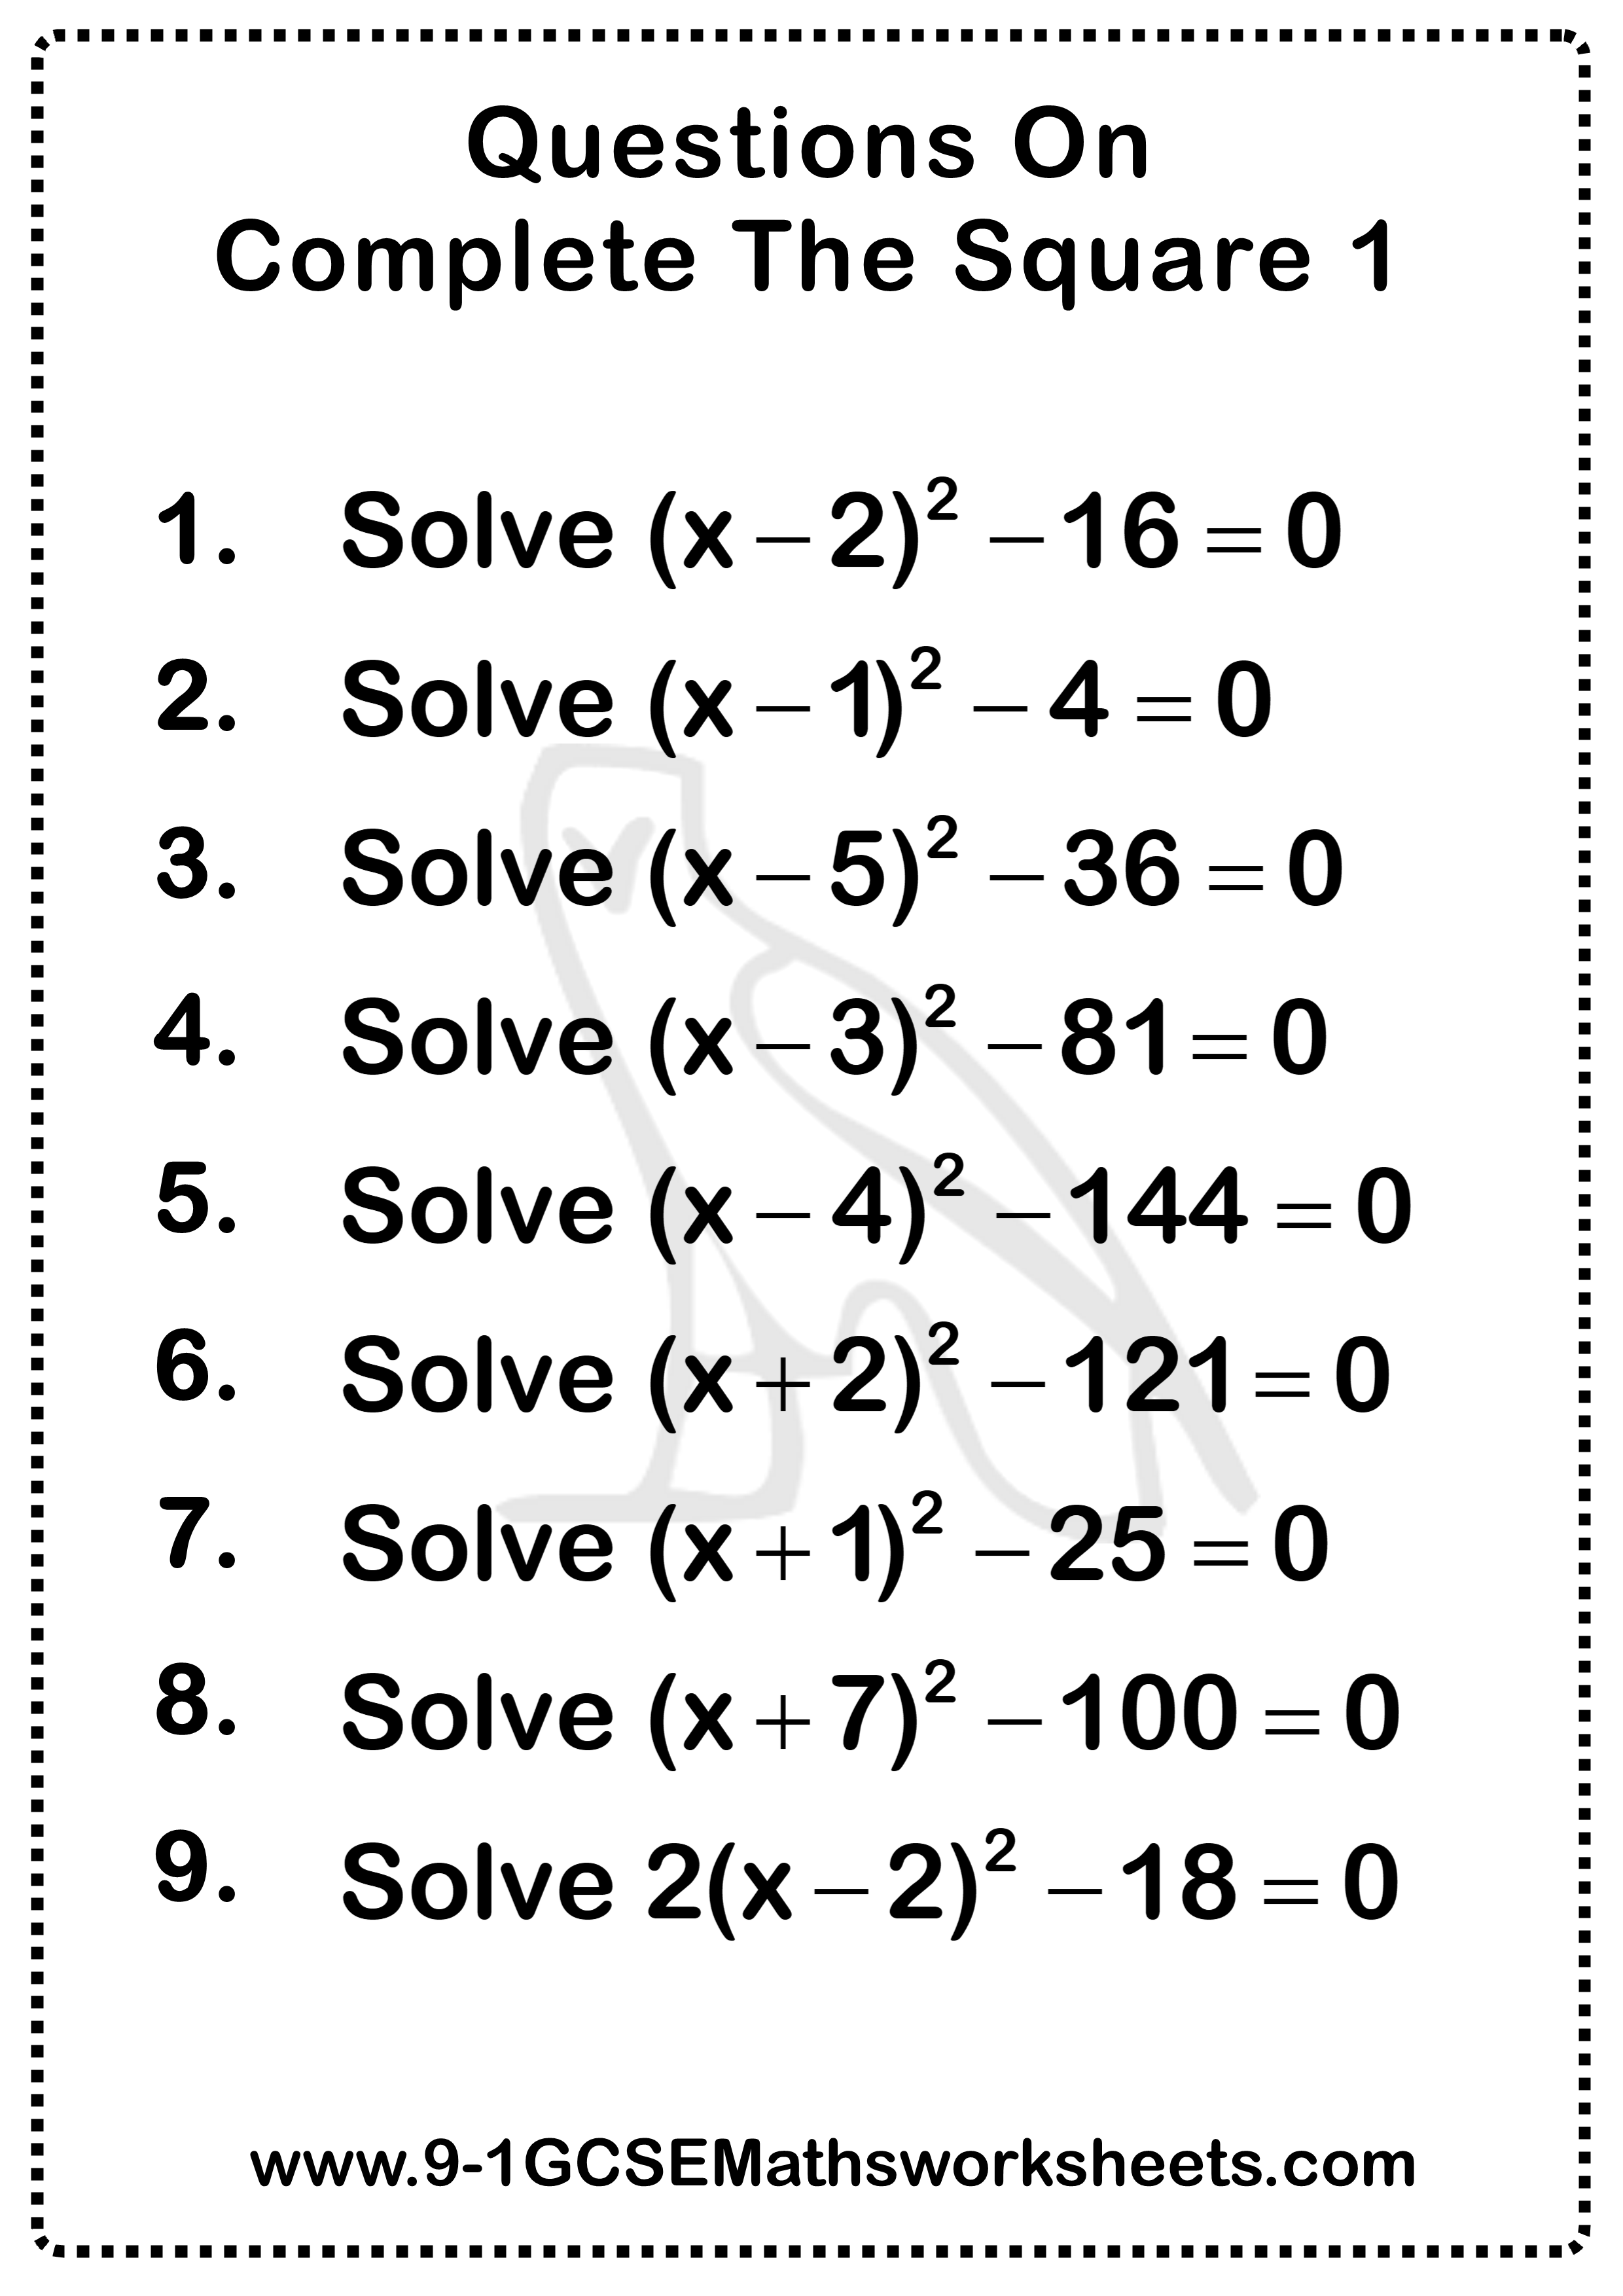 Completing The Square Questions 1 In